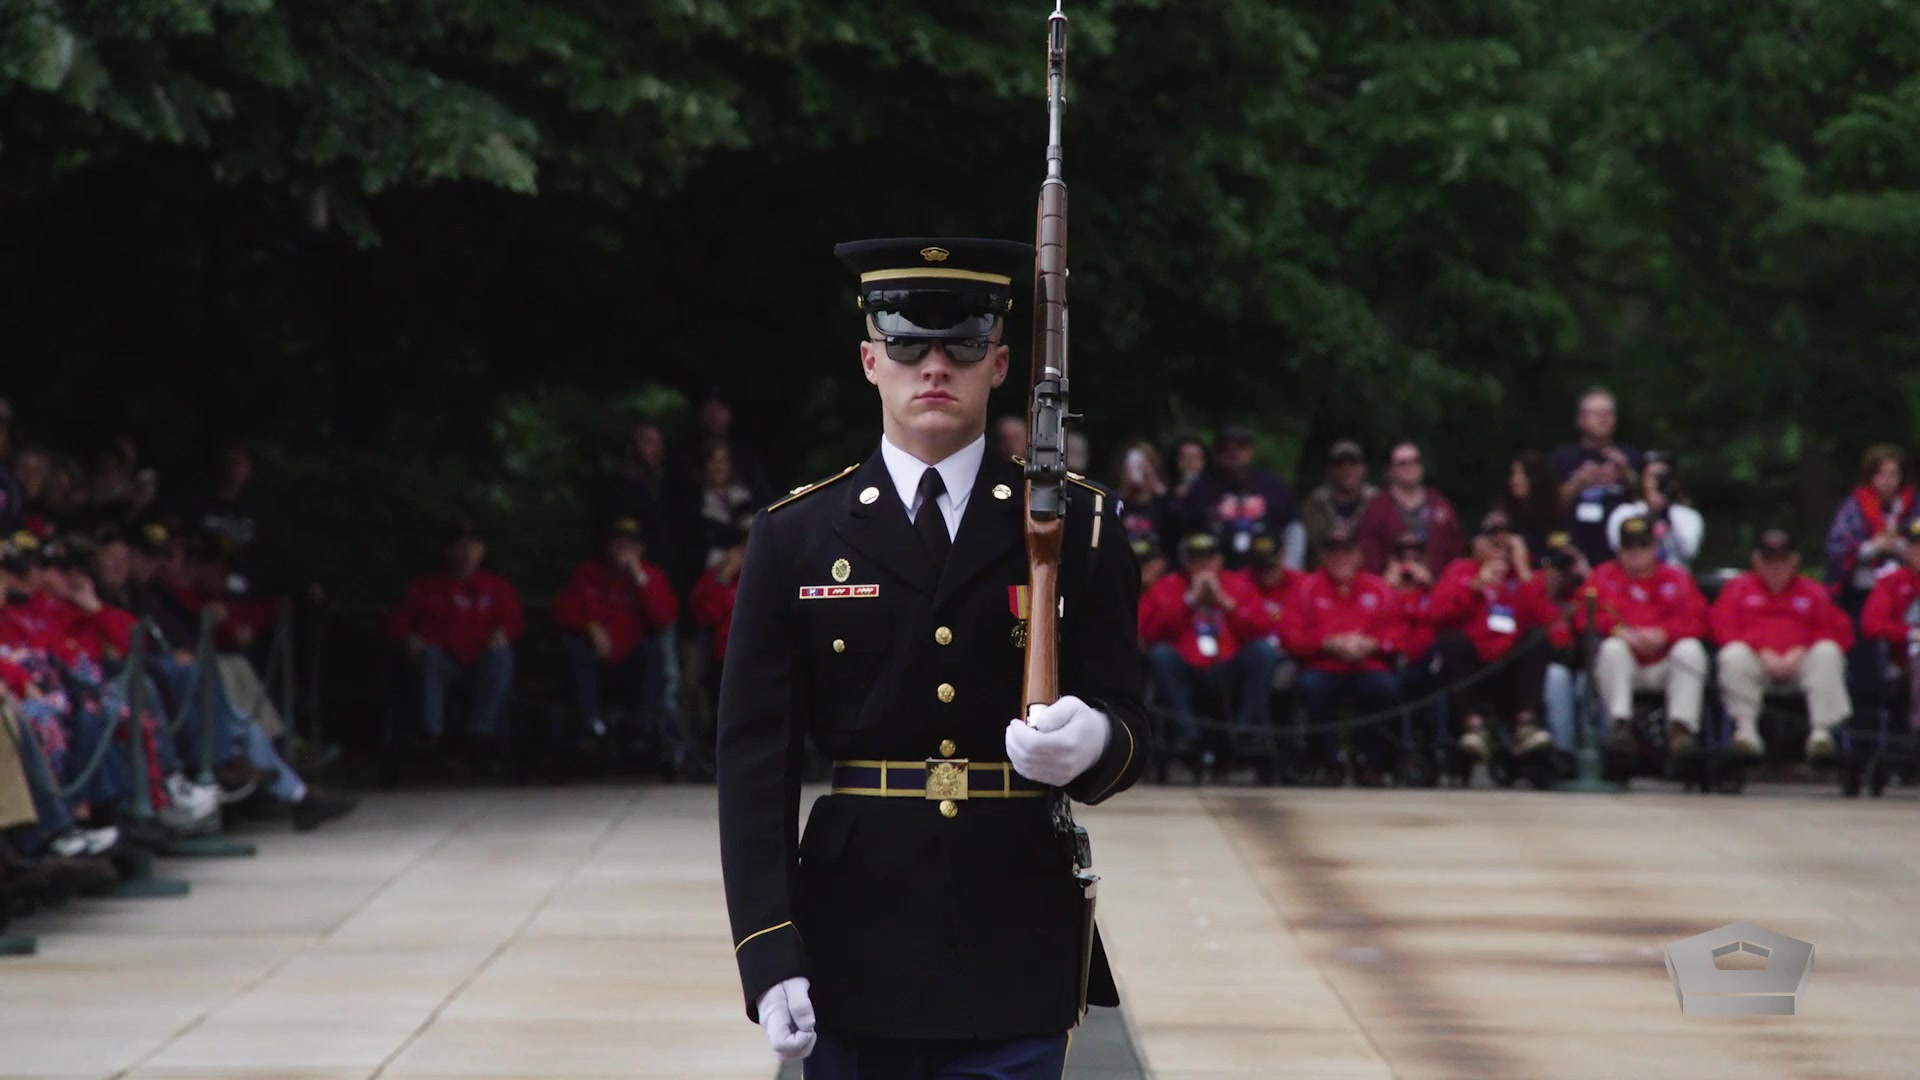 It's a small plot of land that's never left unguarded. The sentinels who guard the Tomb of the Unknown Soldier are a small and exclusive group. They stand their post 24 hours a day, 365 days a year regardless of the weather. Hear the Sentinel's Creed and you'll know why.